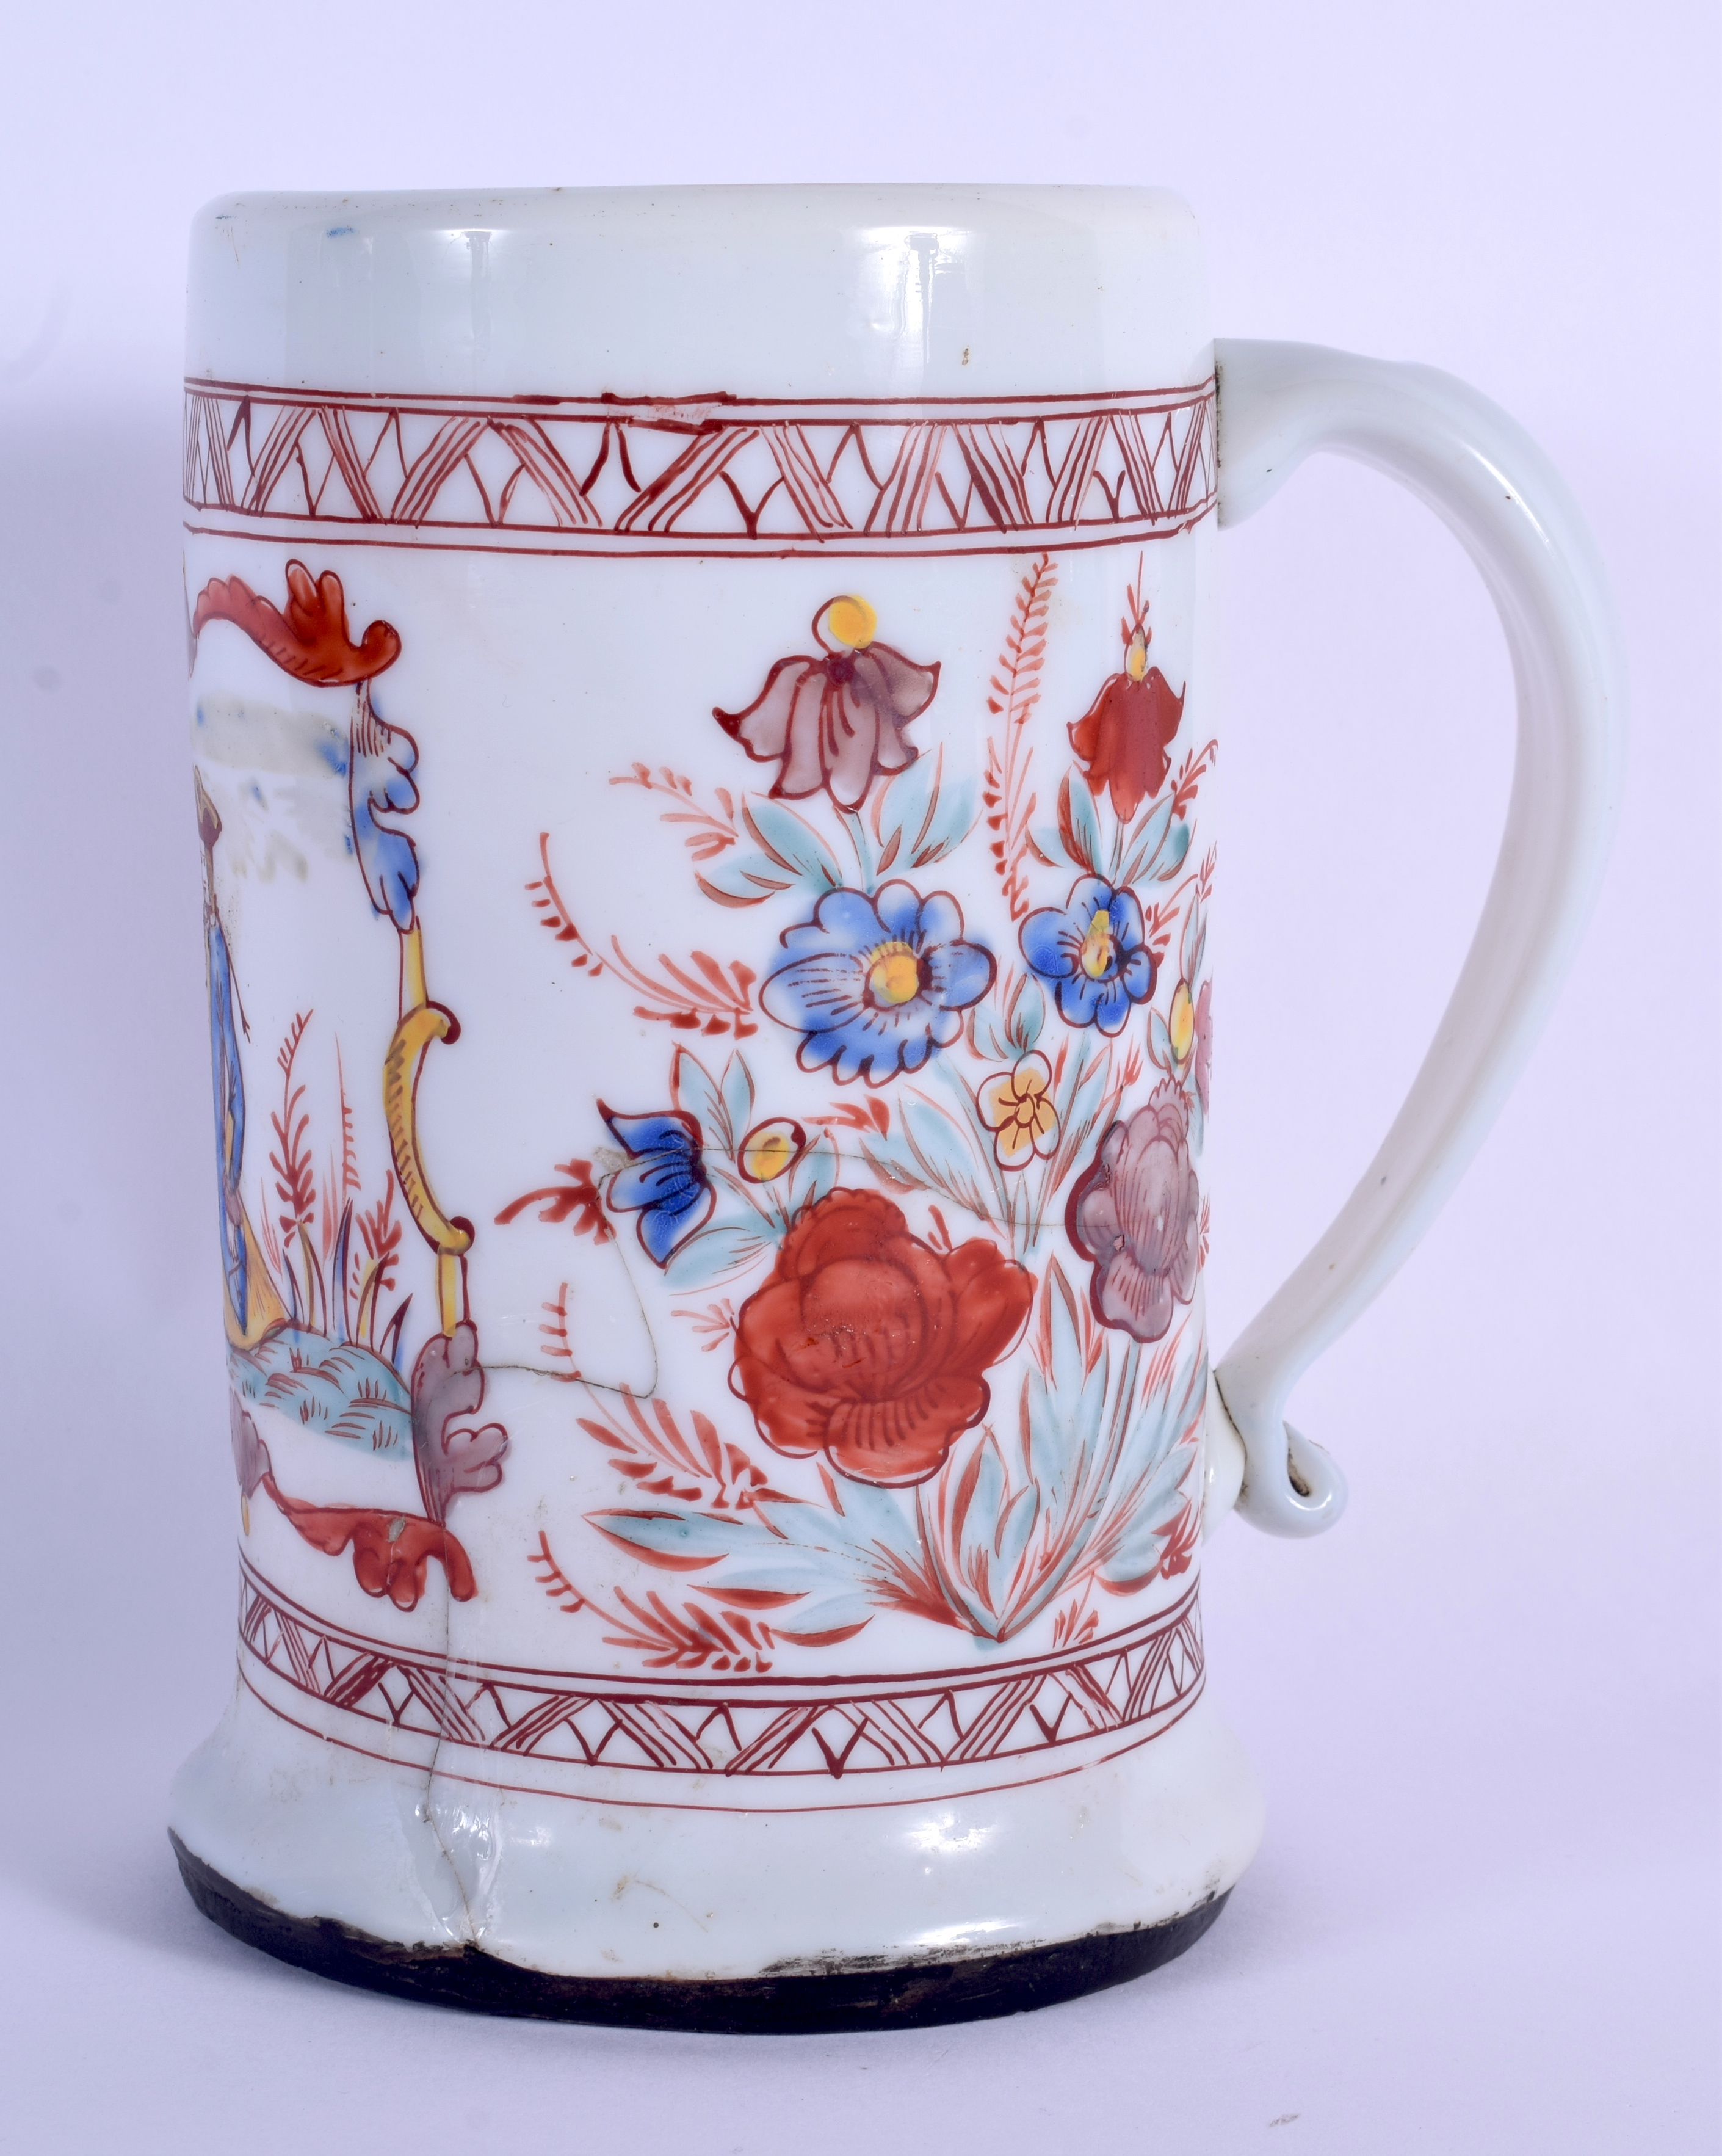 AN 18TH CENTURY ENGLISH ENAMELLED MILK GLASS TANKARD possibly made for the Dutch market. 18.5 cm hig - Image 2 of 5